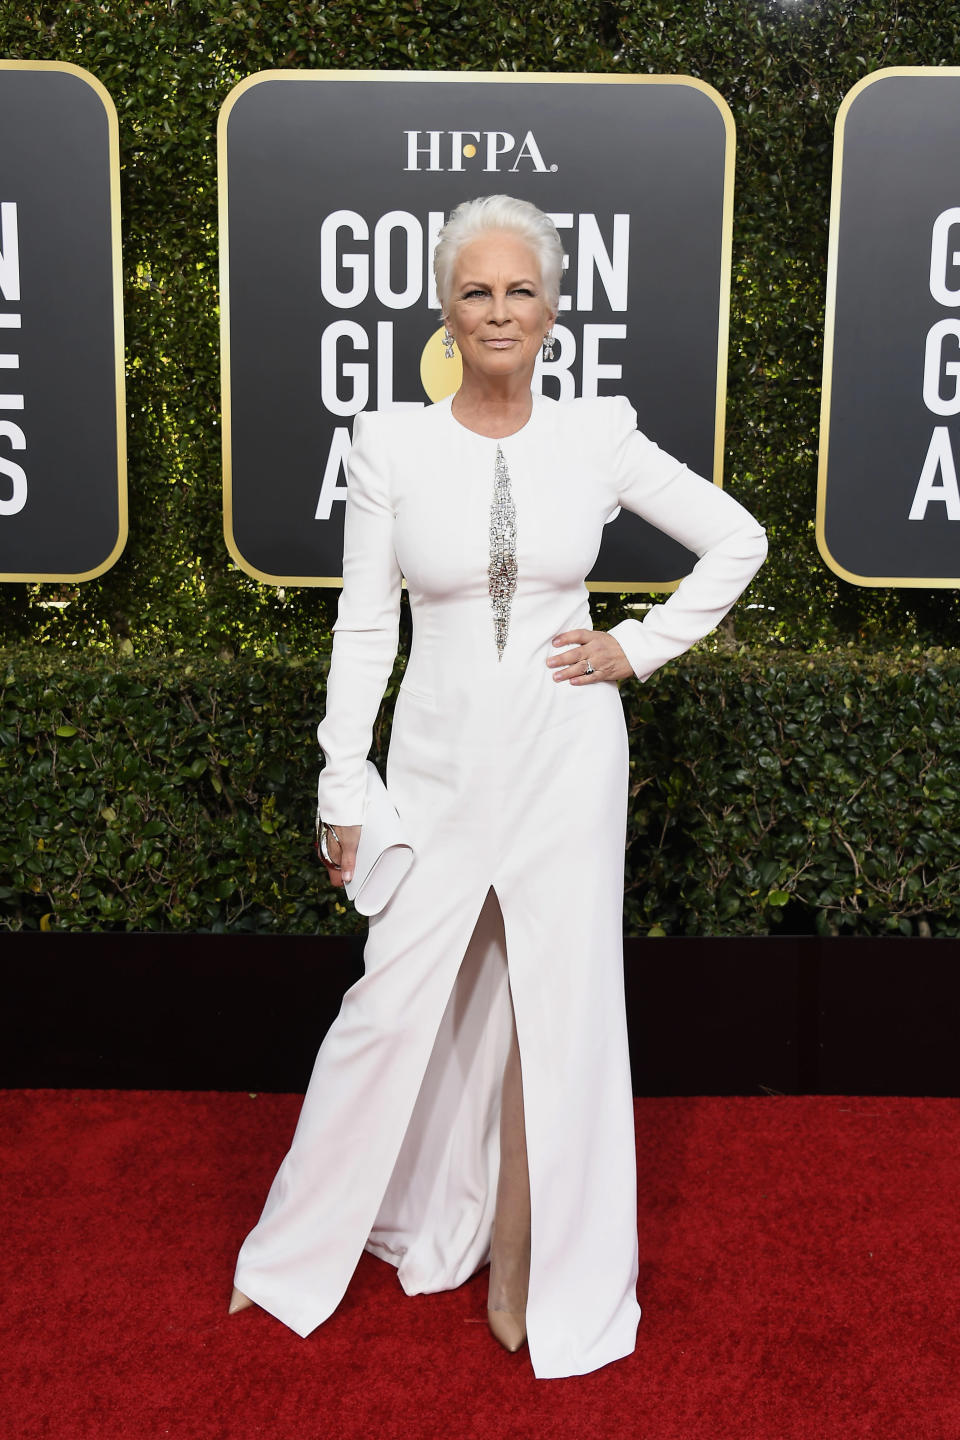 <p>Sexy at 60! Curtis looked radiant in a white Alexander McQueen gown.<br>Image via Getty Images. </p>